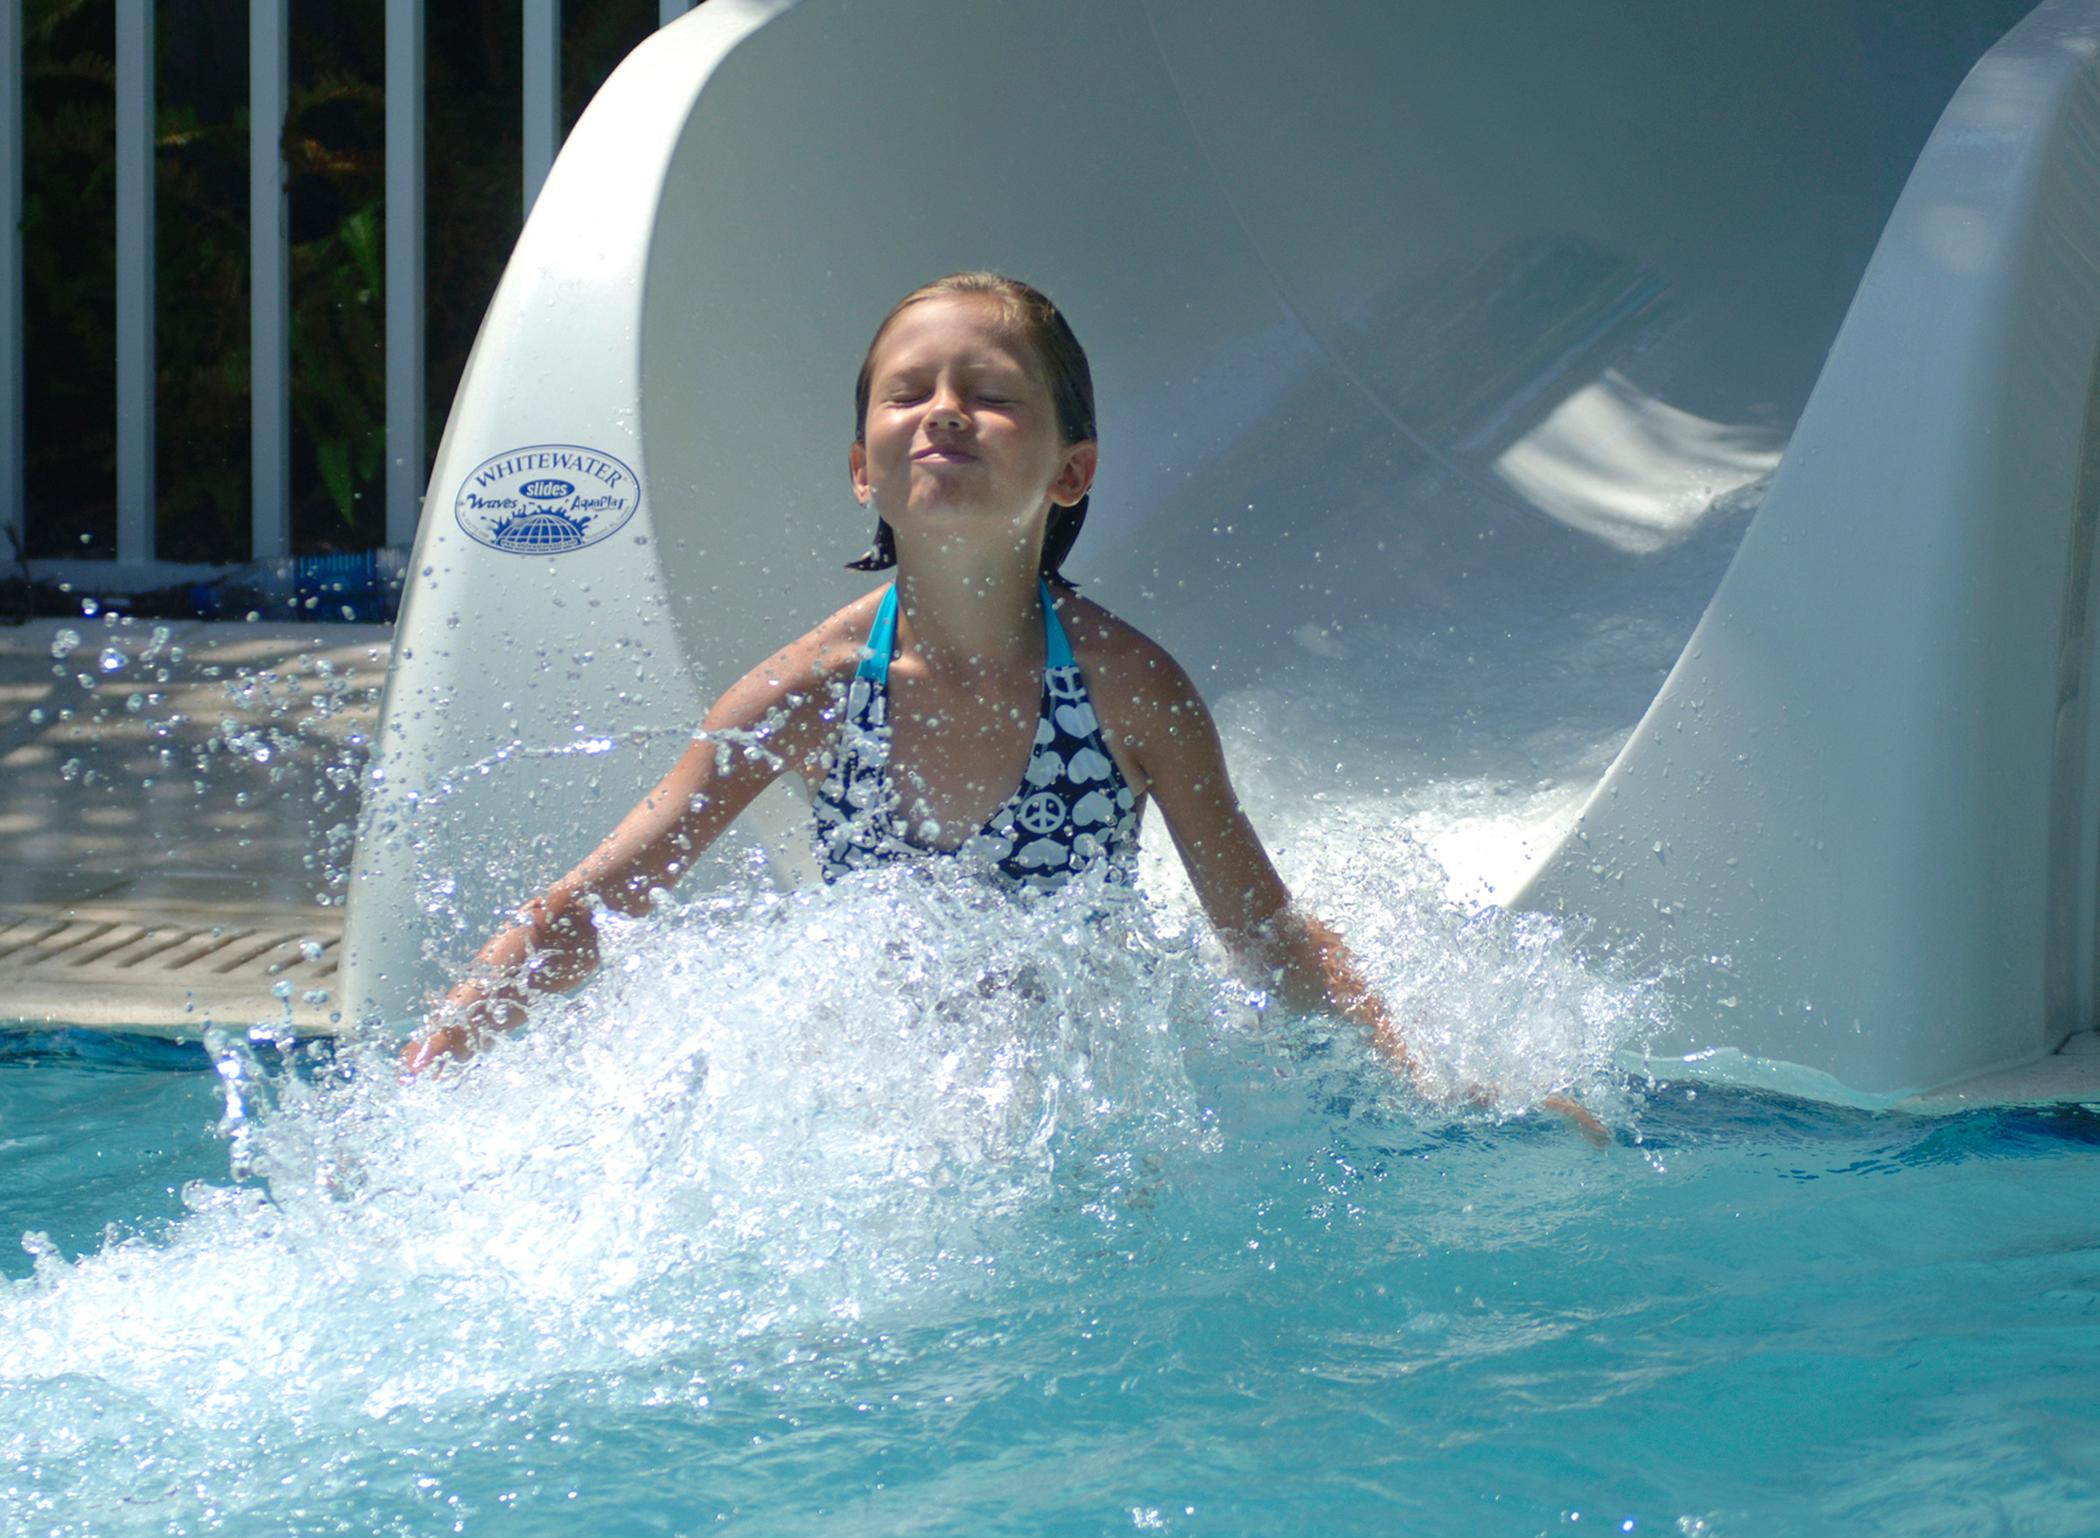 H2Whoa! water slides will keep you and your kids entertained for hours.